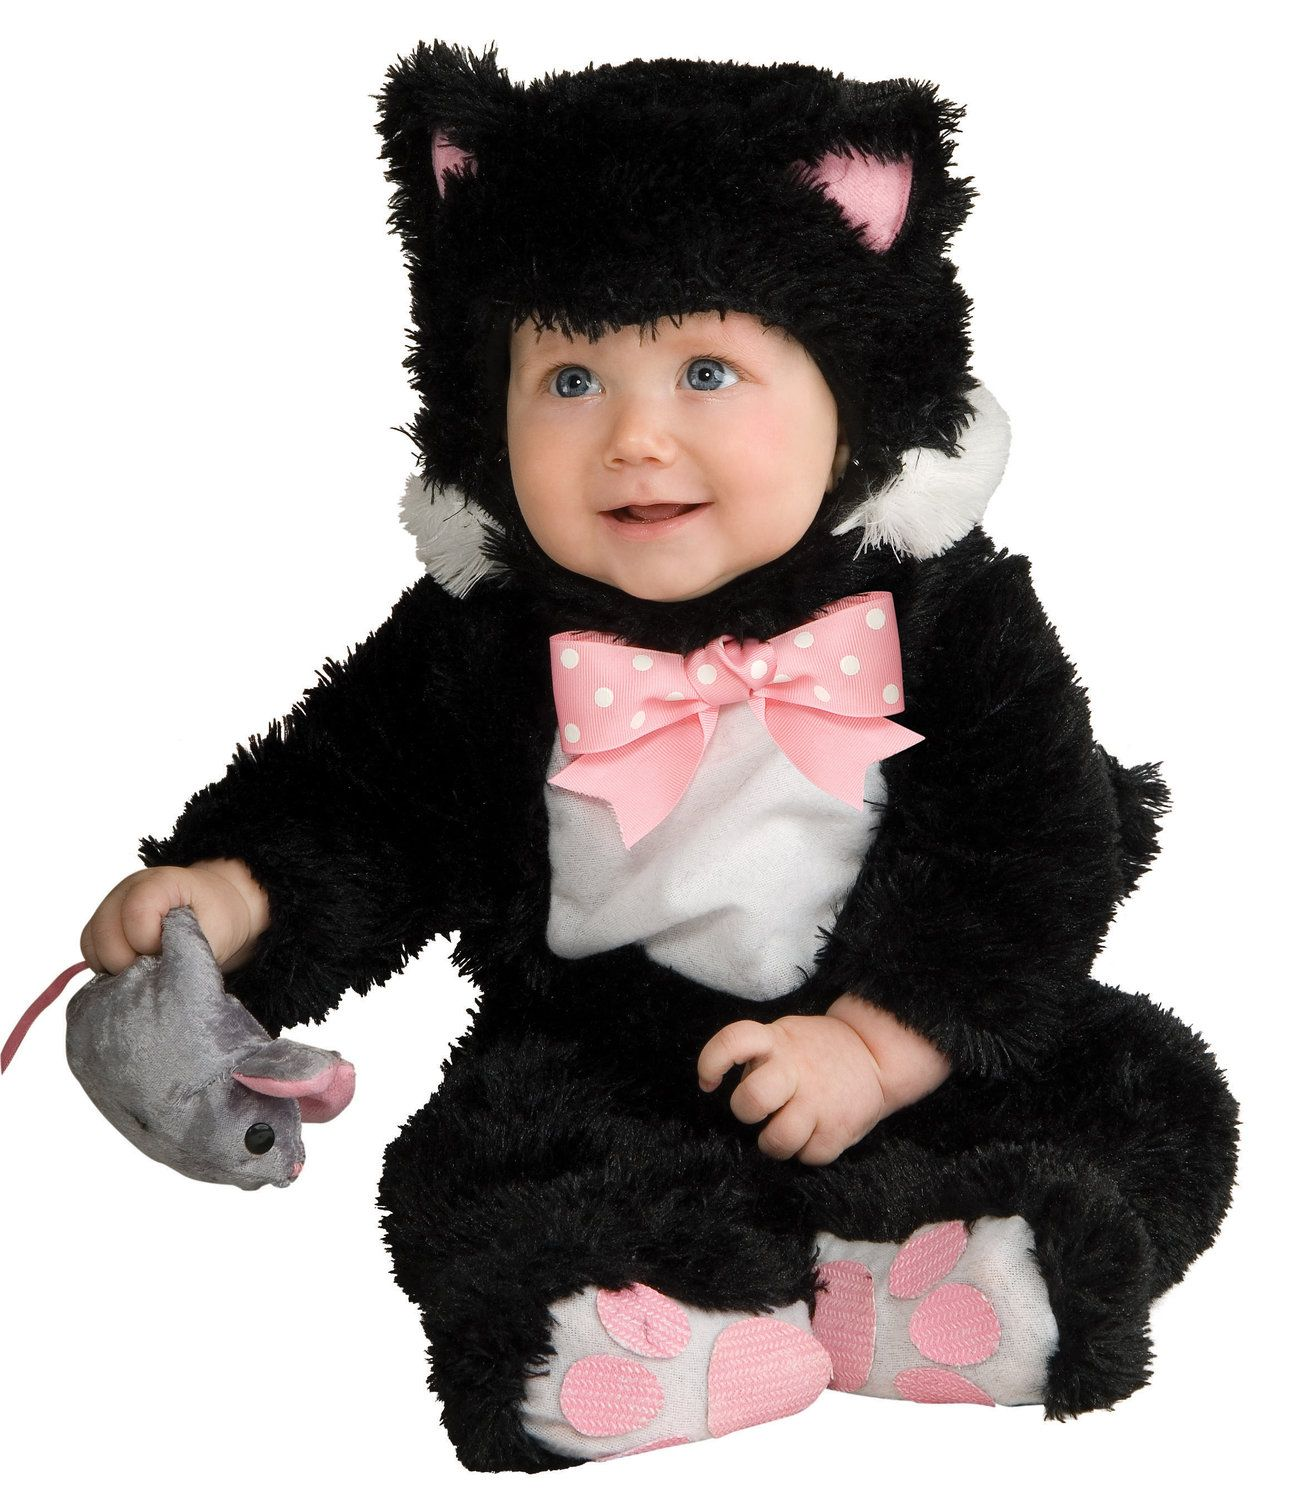 Sneaky Black Kitty Cat Baby Costume Kids Cat Costumes Kitten Costumes Kids Costumes Baby Costumes